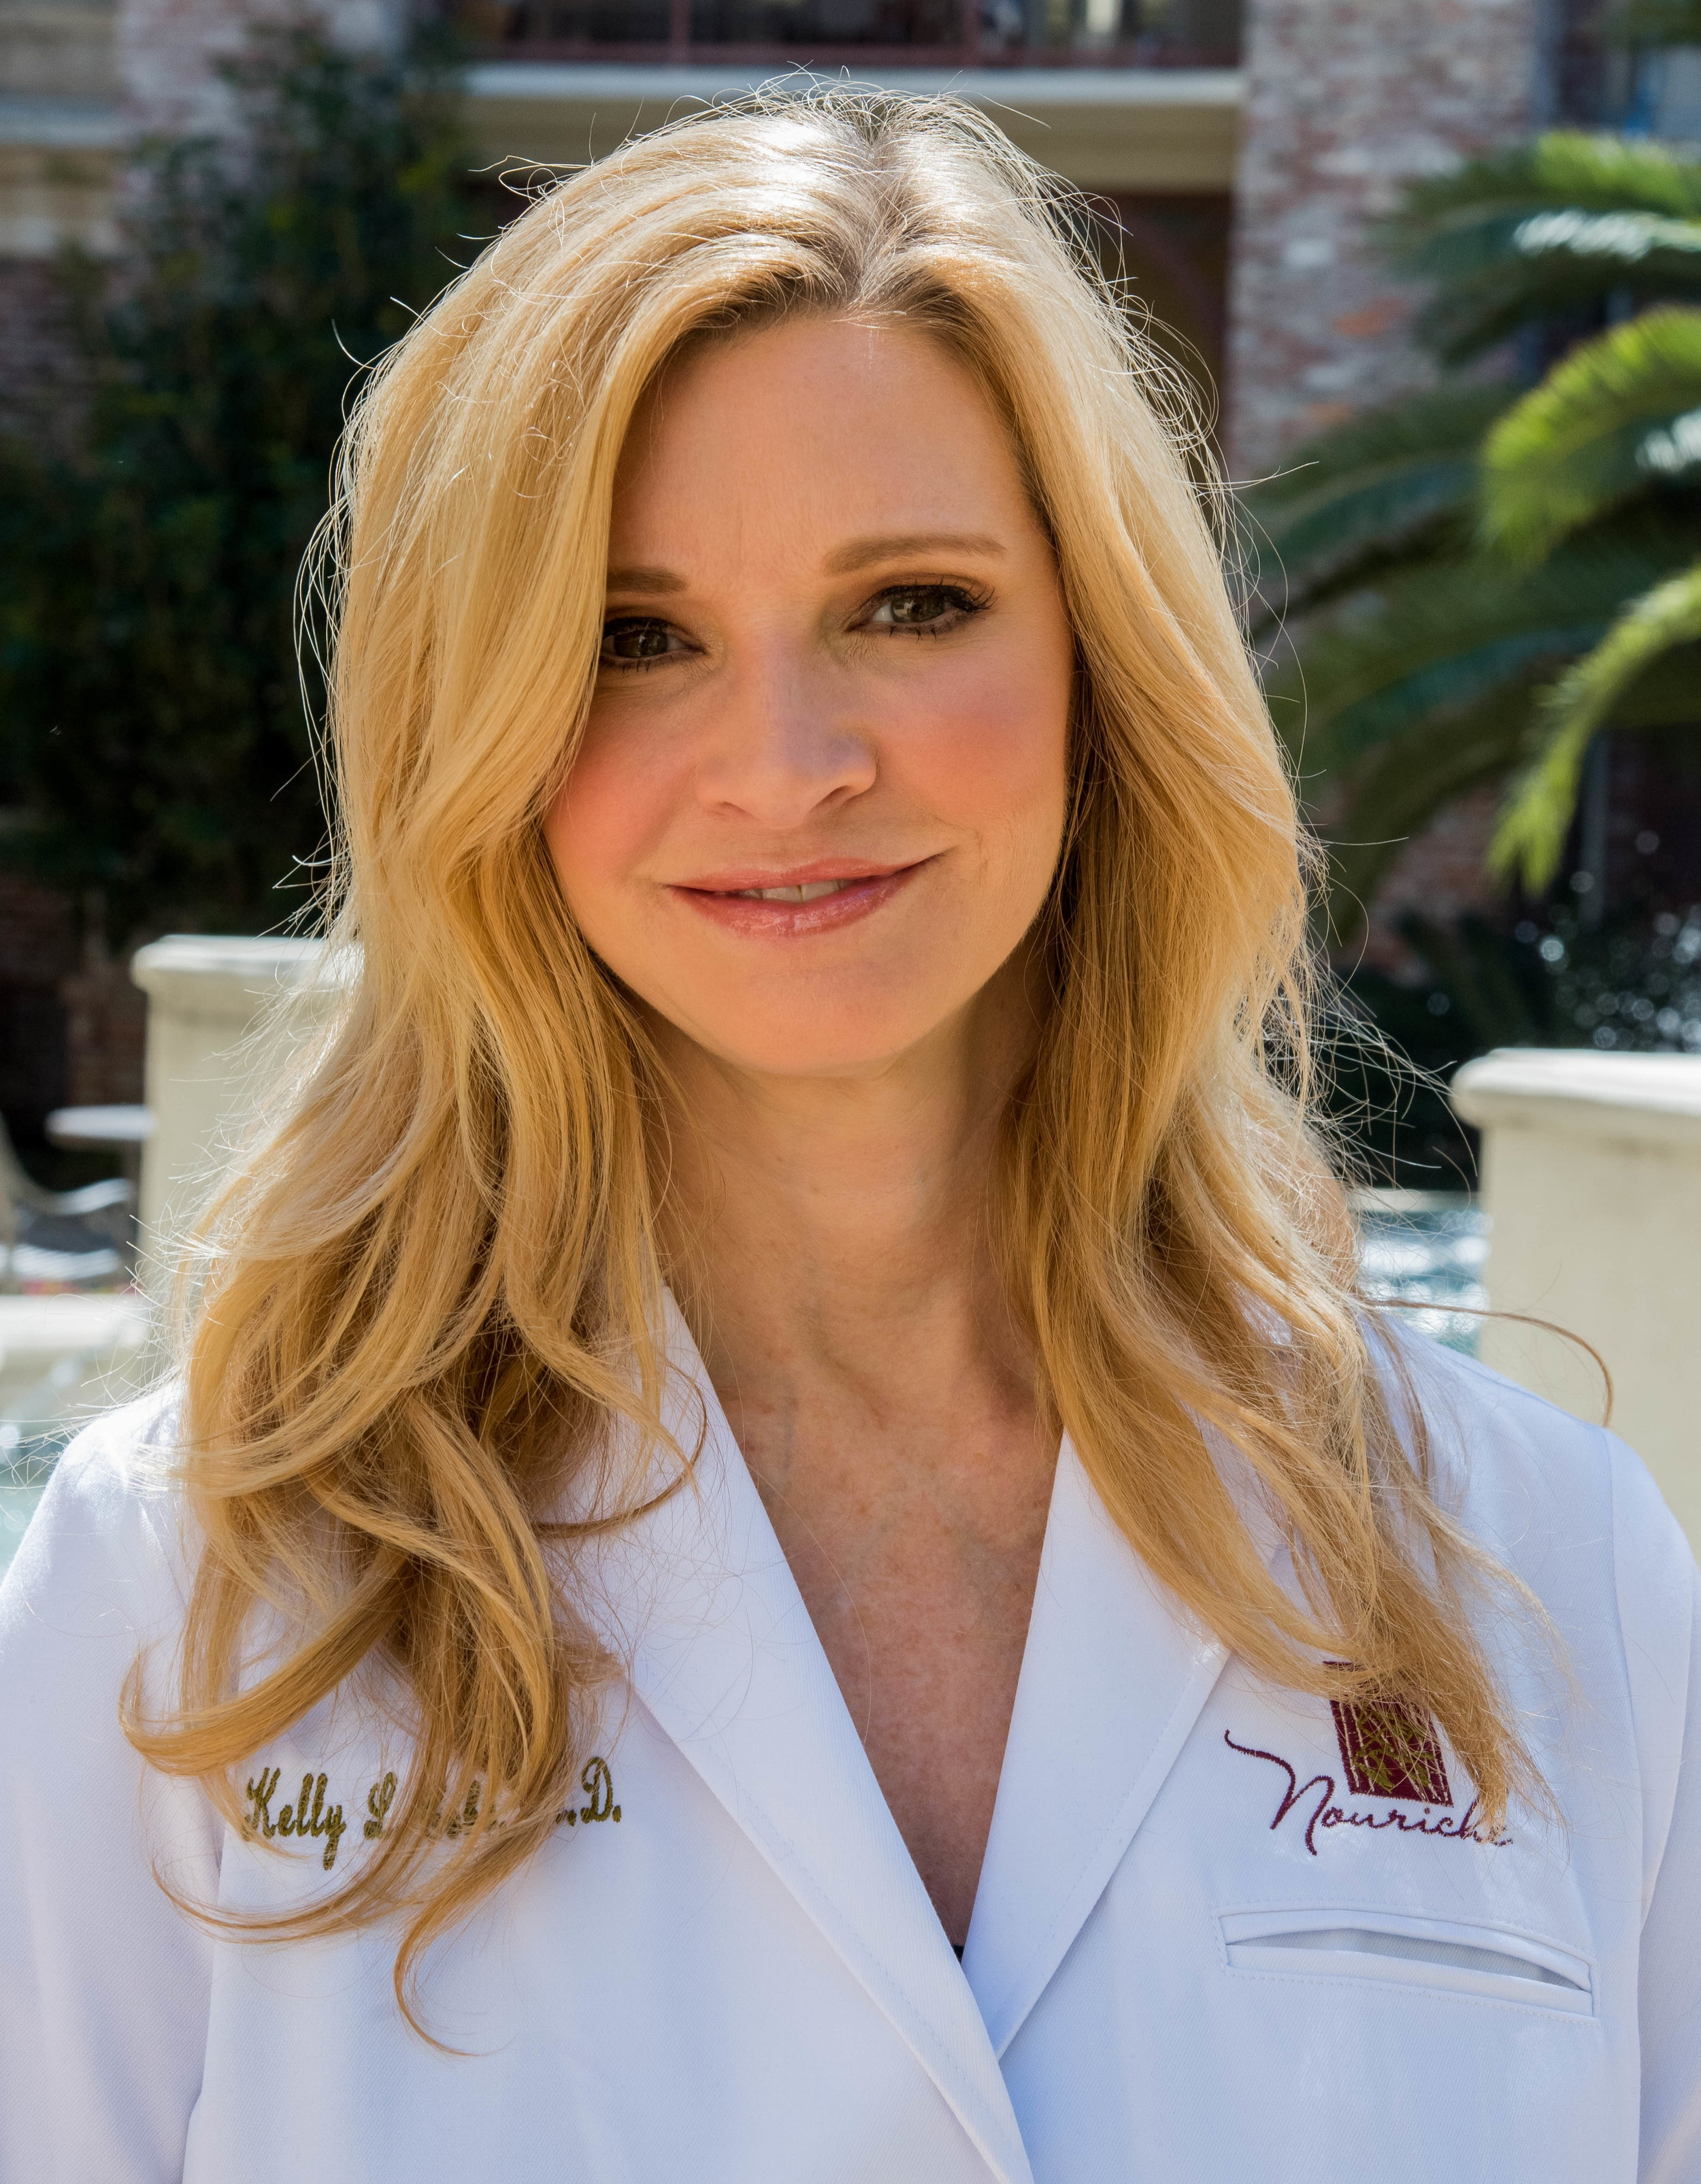 Meet Dr. Kelly Cobb -